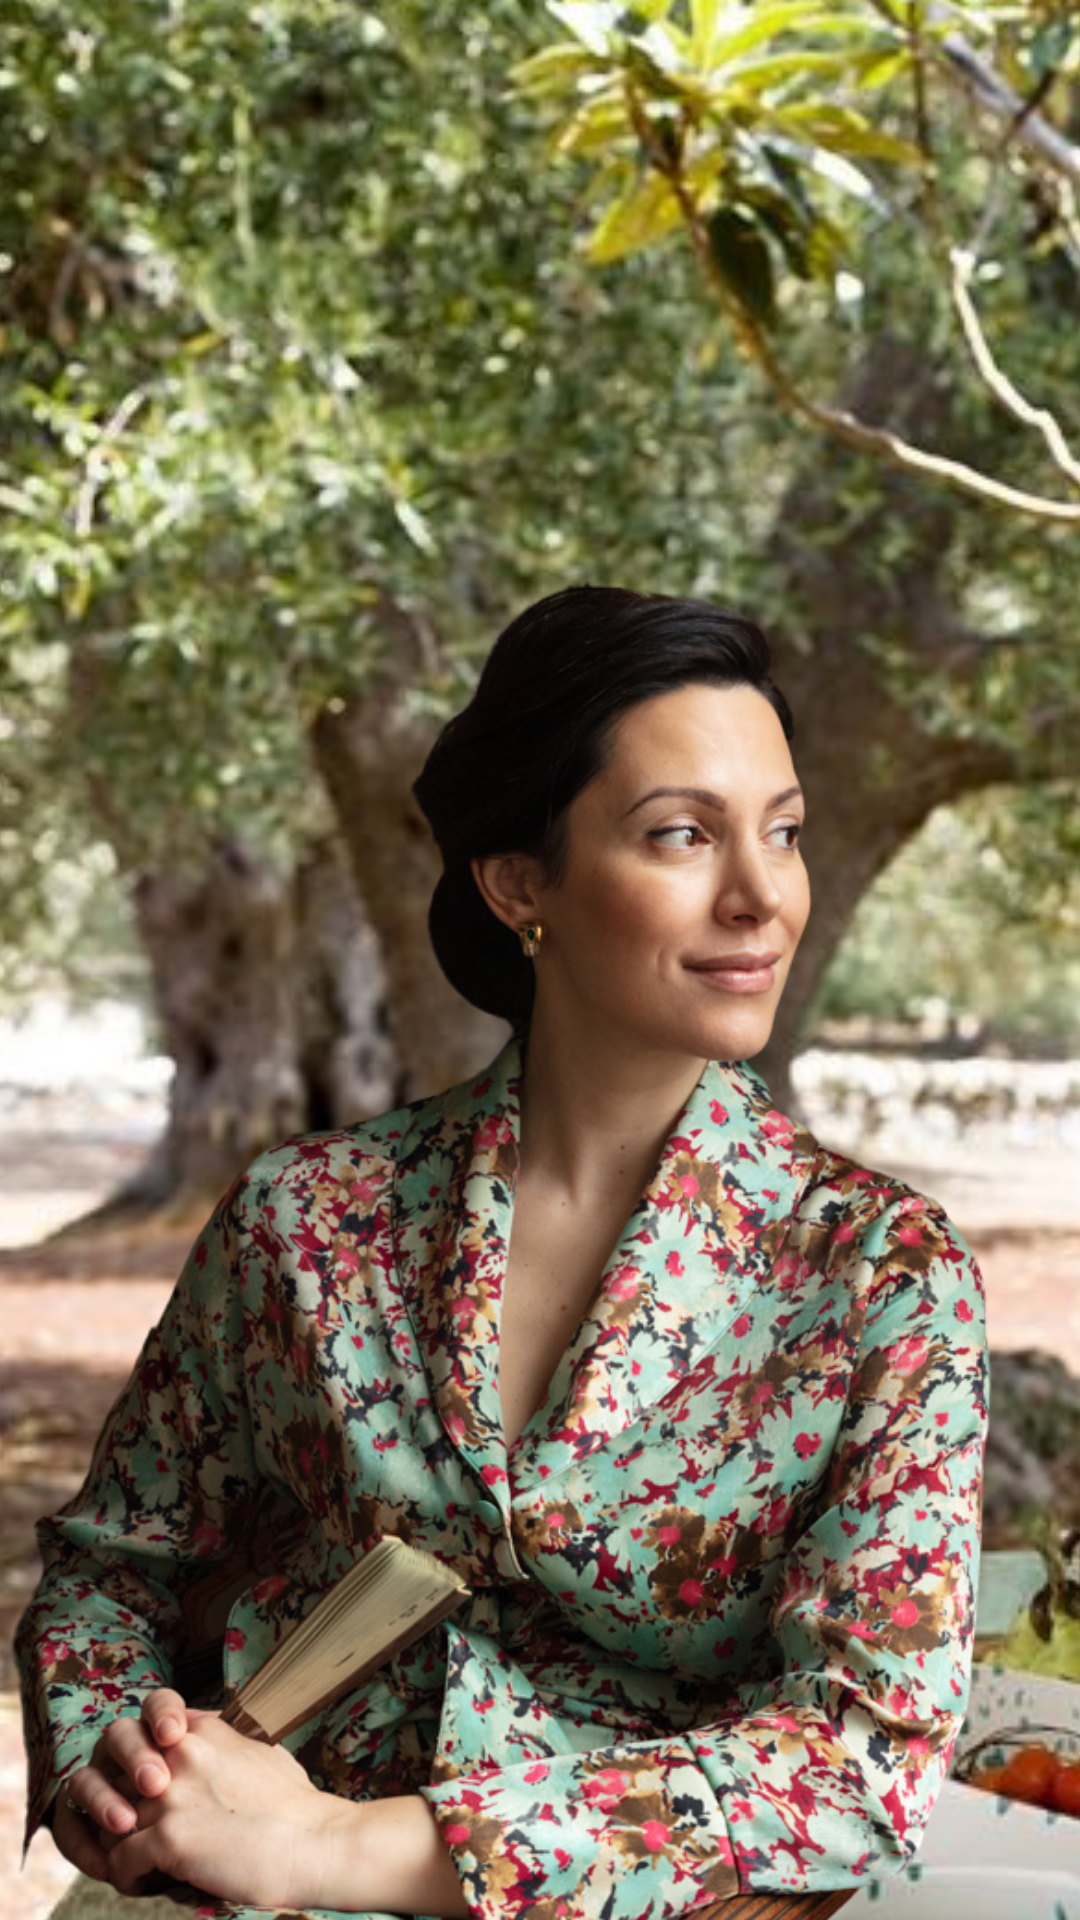 Eleonora Galasso wears Diana d'Orville couture silk liberty prints sustainable luxury suit